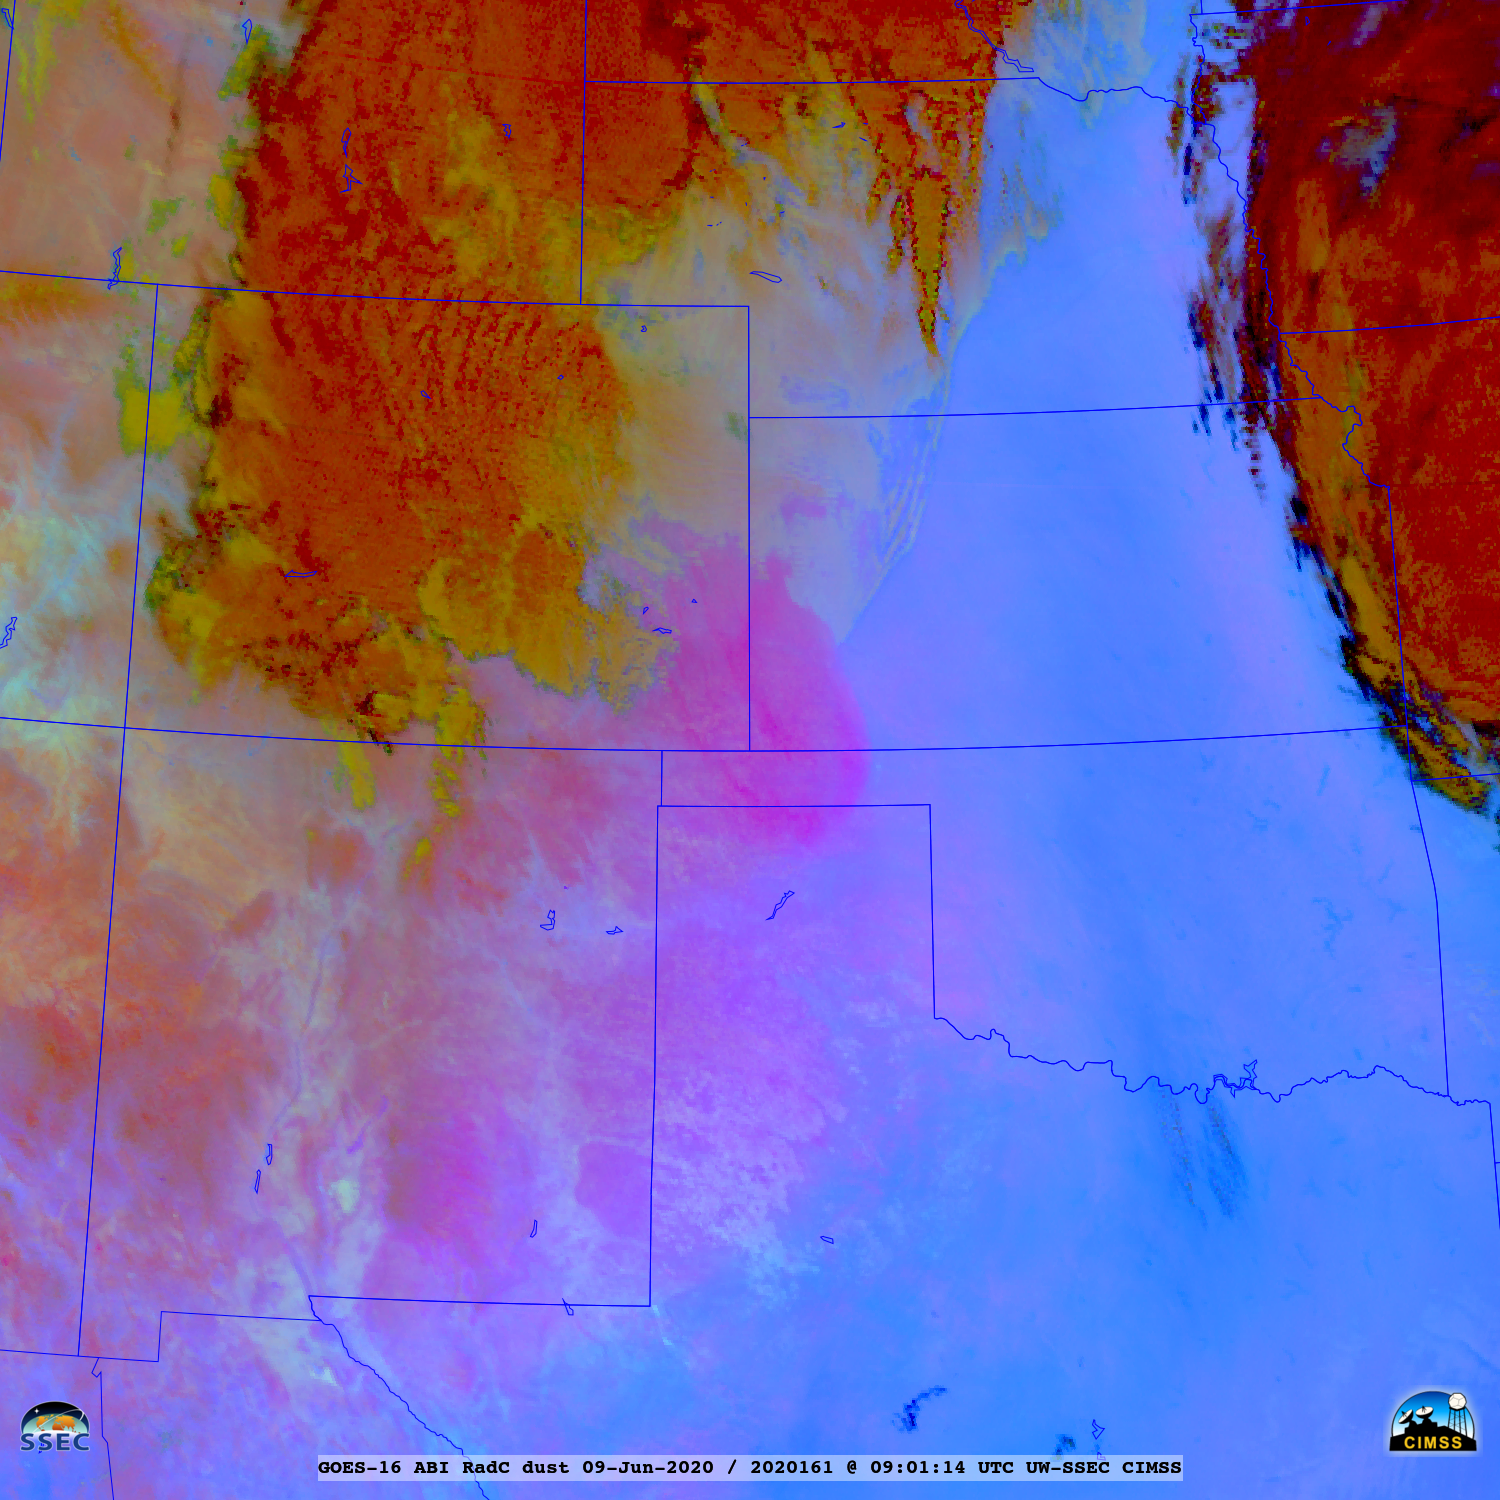 GOES-16 Dust RGB images [click to play animation   MP4]